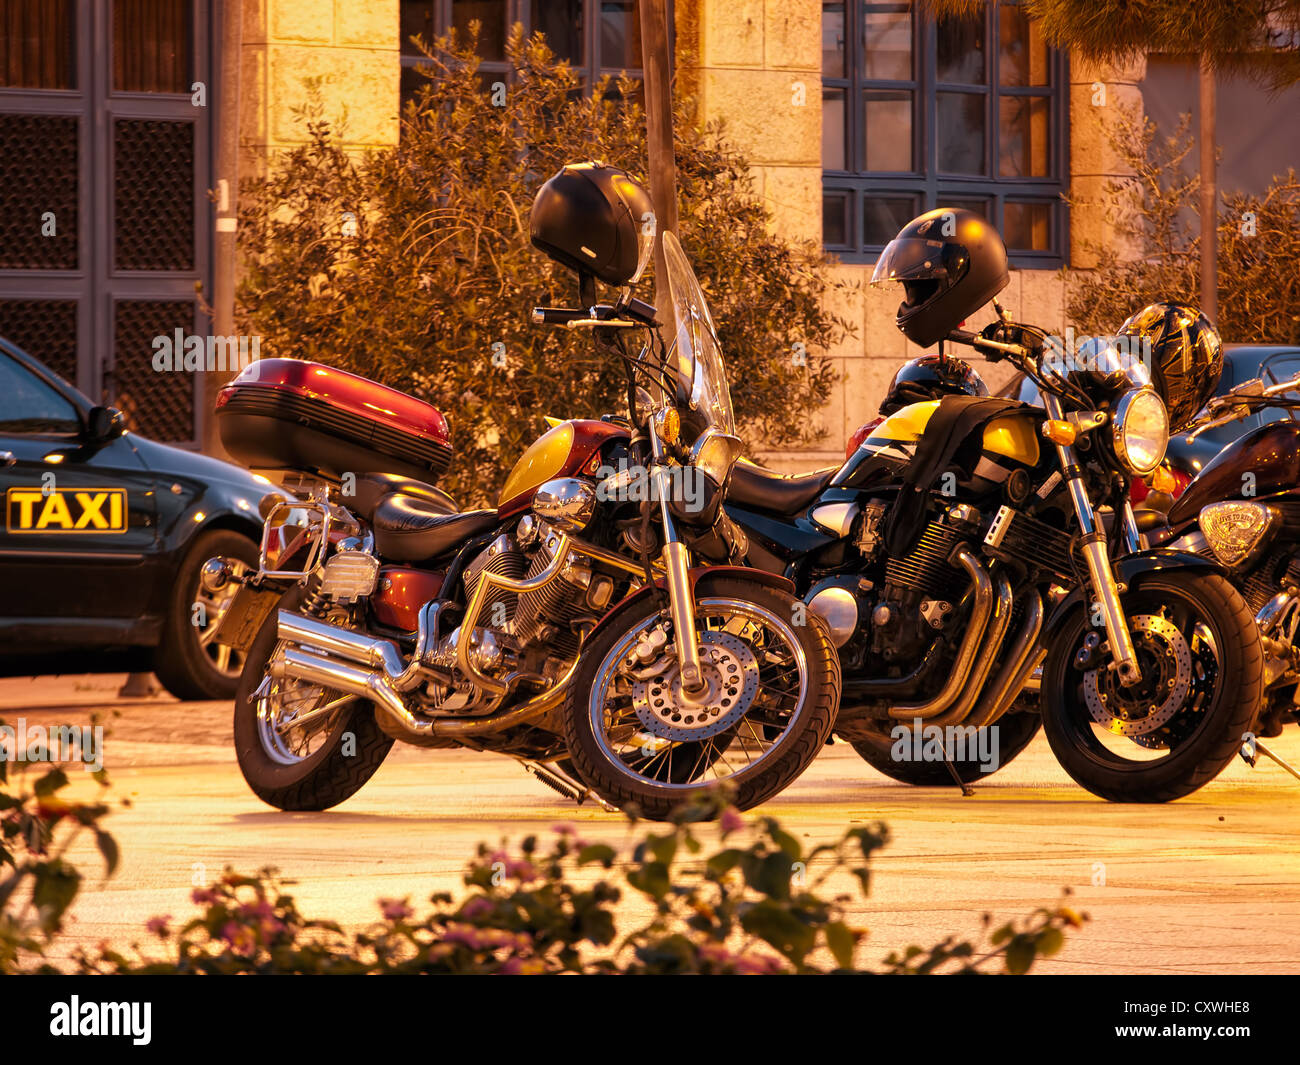 Sight on several motorcycles parked on the town square. - Stock Image